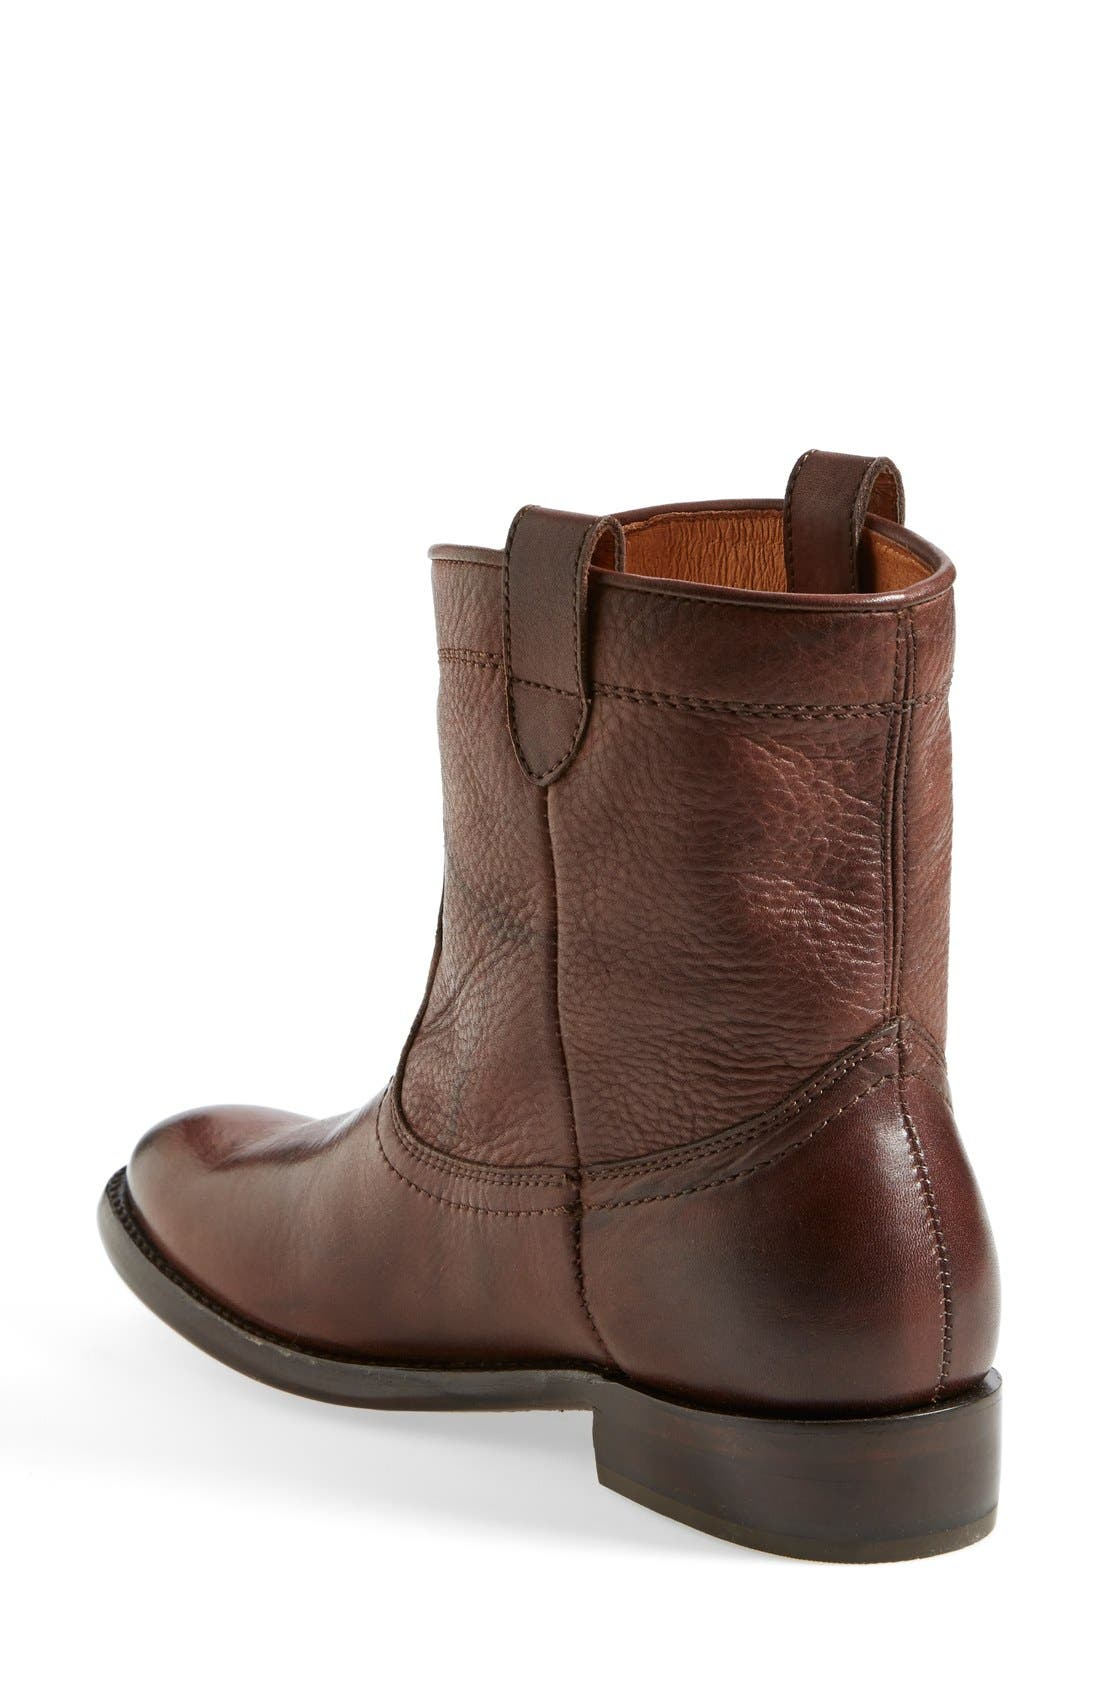 'Ada' Boot,                             Alternate thumbnail 2, color,                             Dark Brown